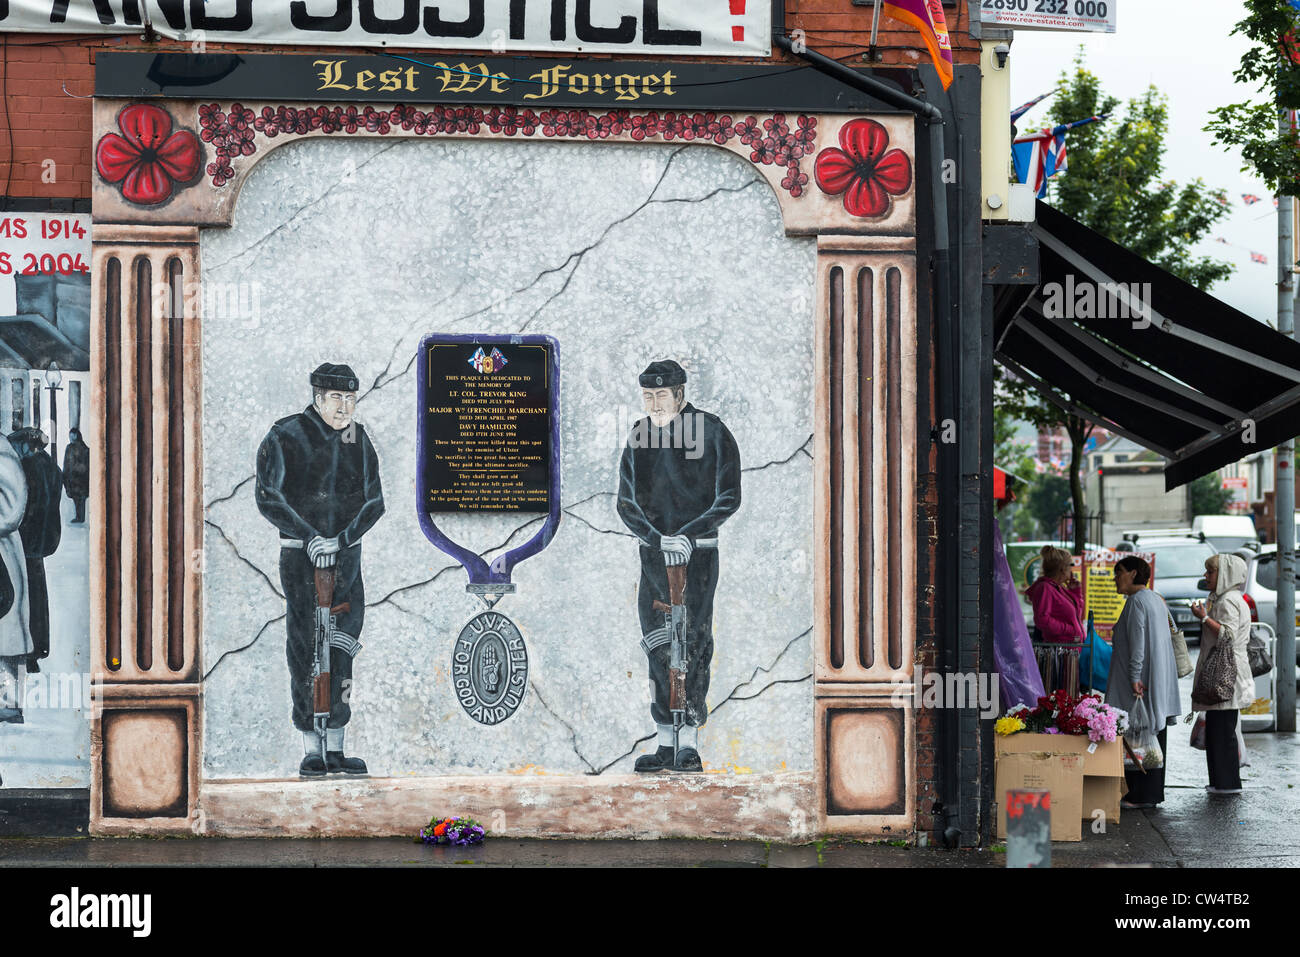 Local people at grocers with Political mural on Shankill road, Belfast in Northern Ireland. - Stock Image